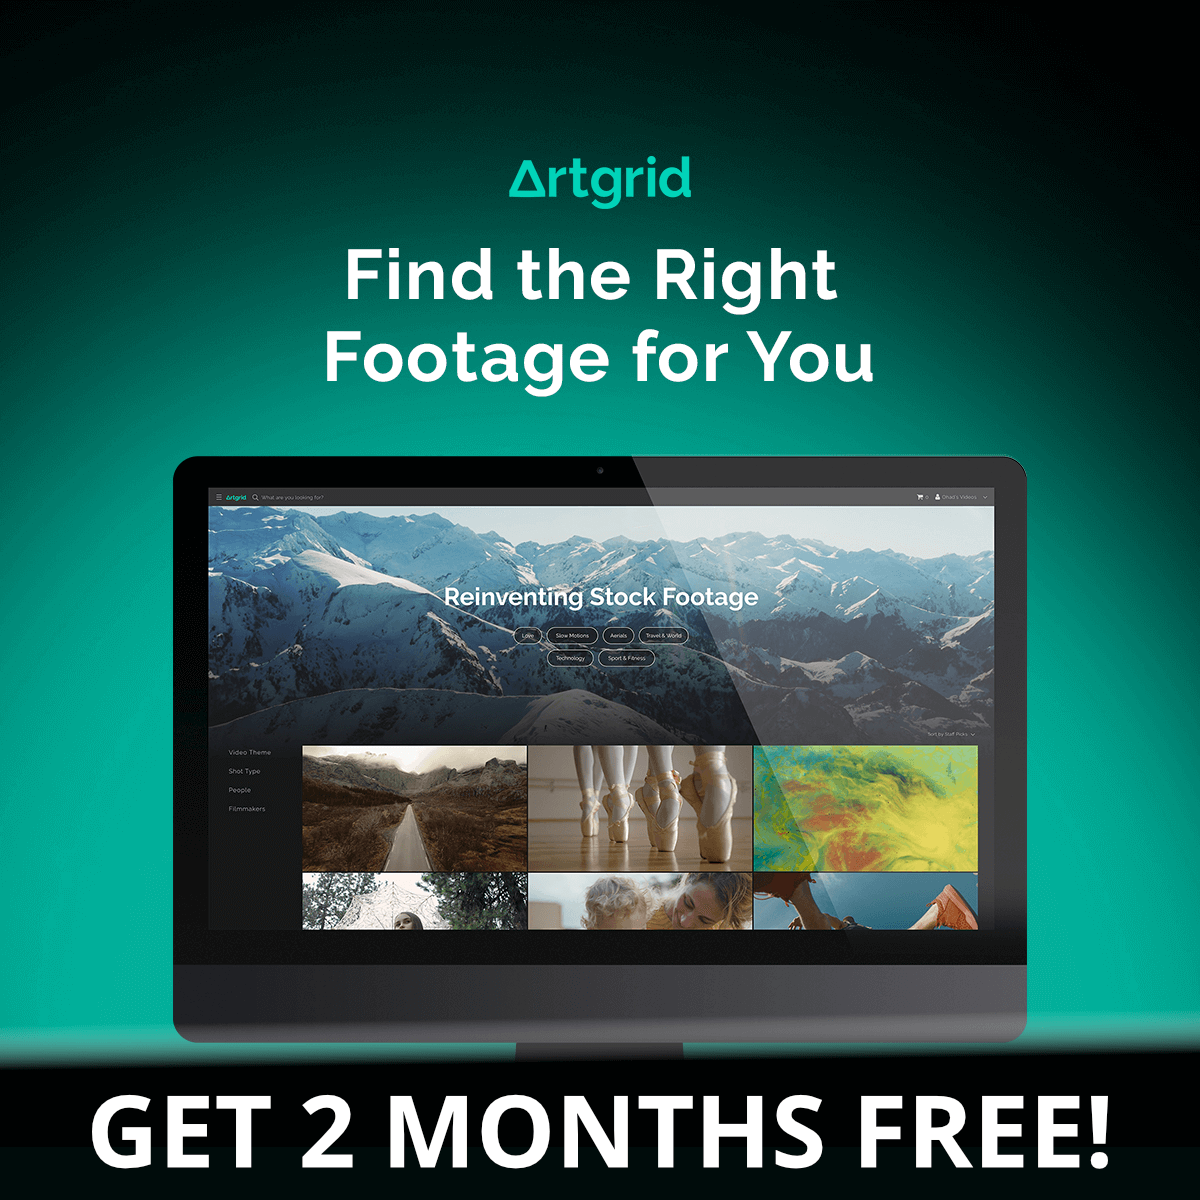 Artgrid 2 months free worth up to $99